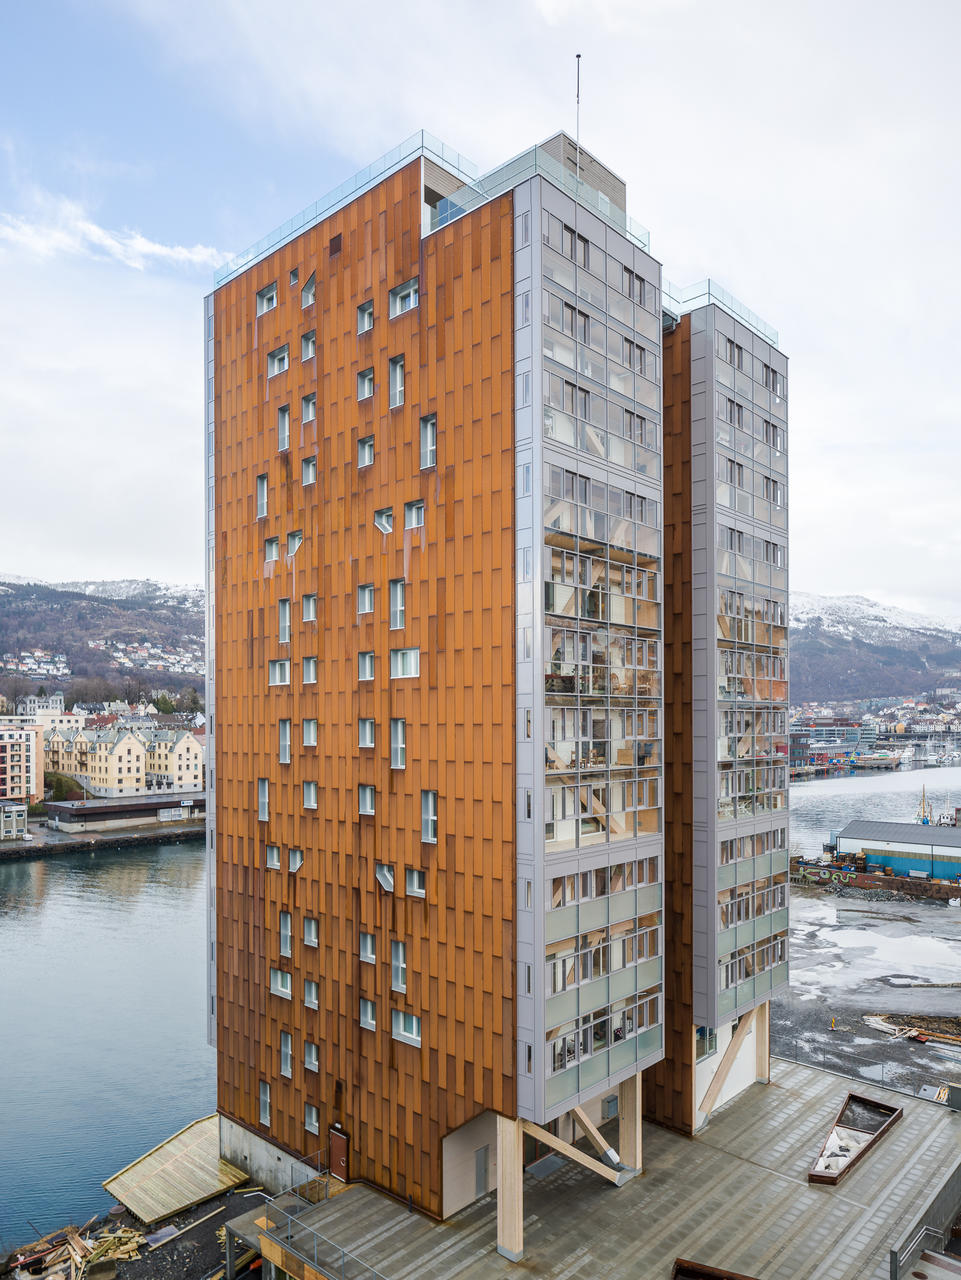 14-storey apartment building in Norway by Kodumaja. Photo: Maris Tomba